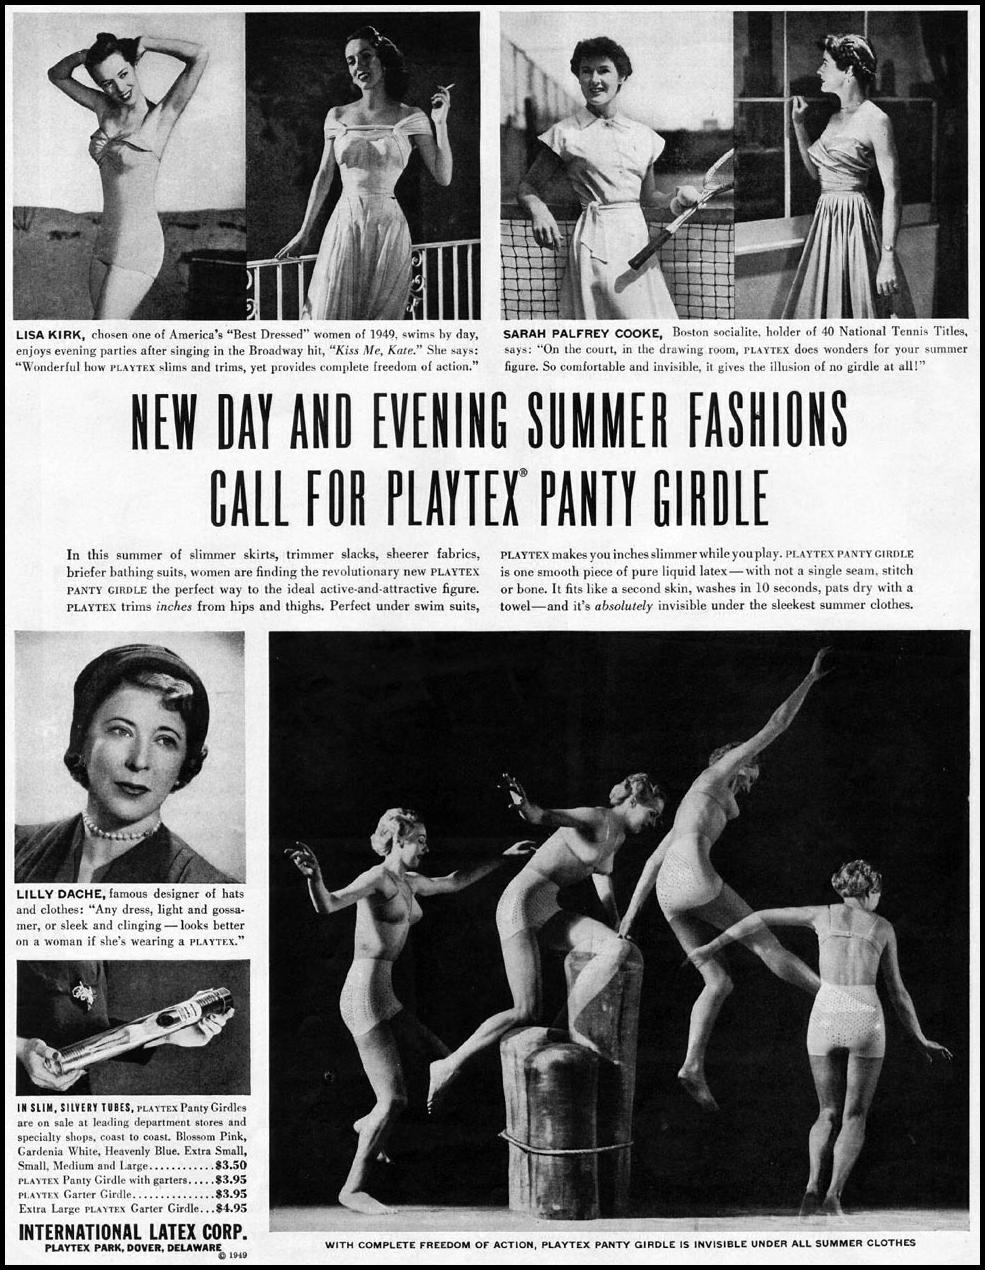 PLAYTEX PANTY GIRDLE LADIES' HOME JOURNAL 07/01/1949 p. 29